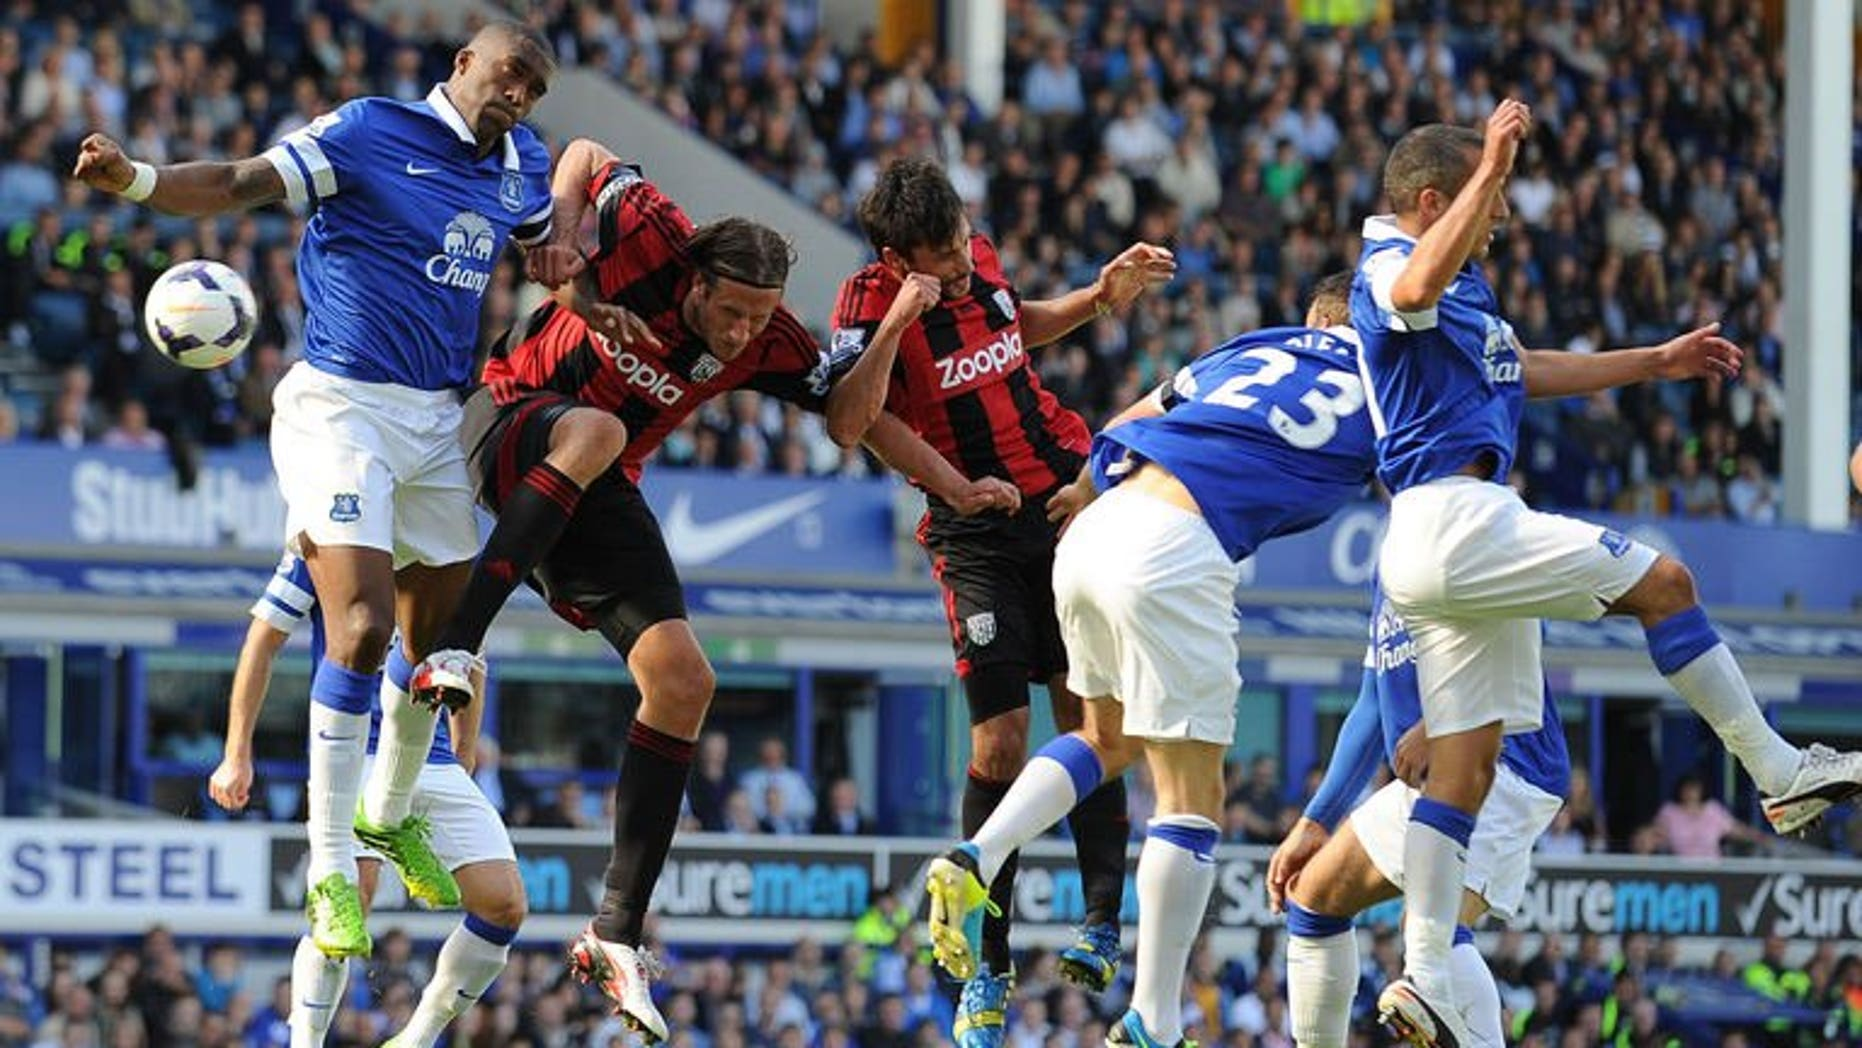 Everton's French defender Sylvain Distin (L) vies with West Bromwich Albion's Swedish defender Jonas Olsson (2nd L) during the English Premier League football match between Everton and West Bromwich Albion at Goodison Park in Liverpool on August 24, 2013. The game ended 0-0.